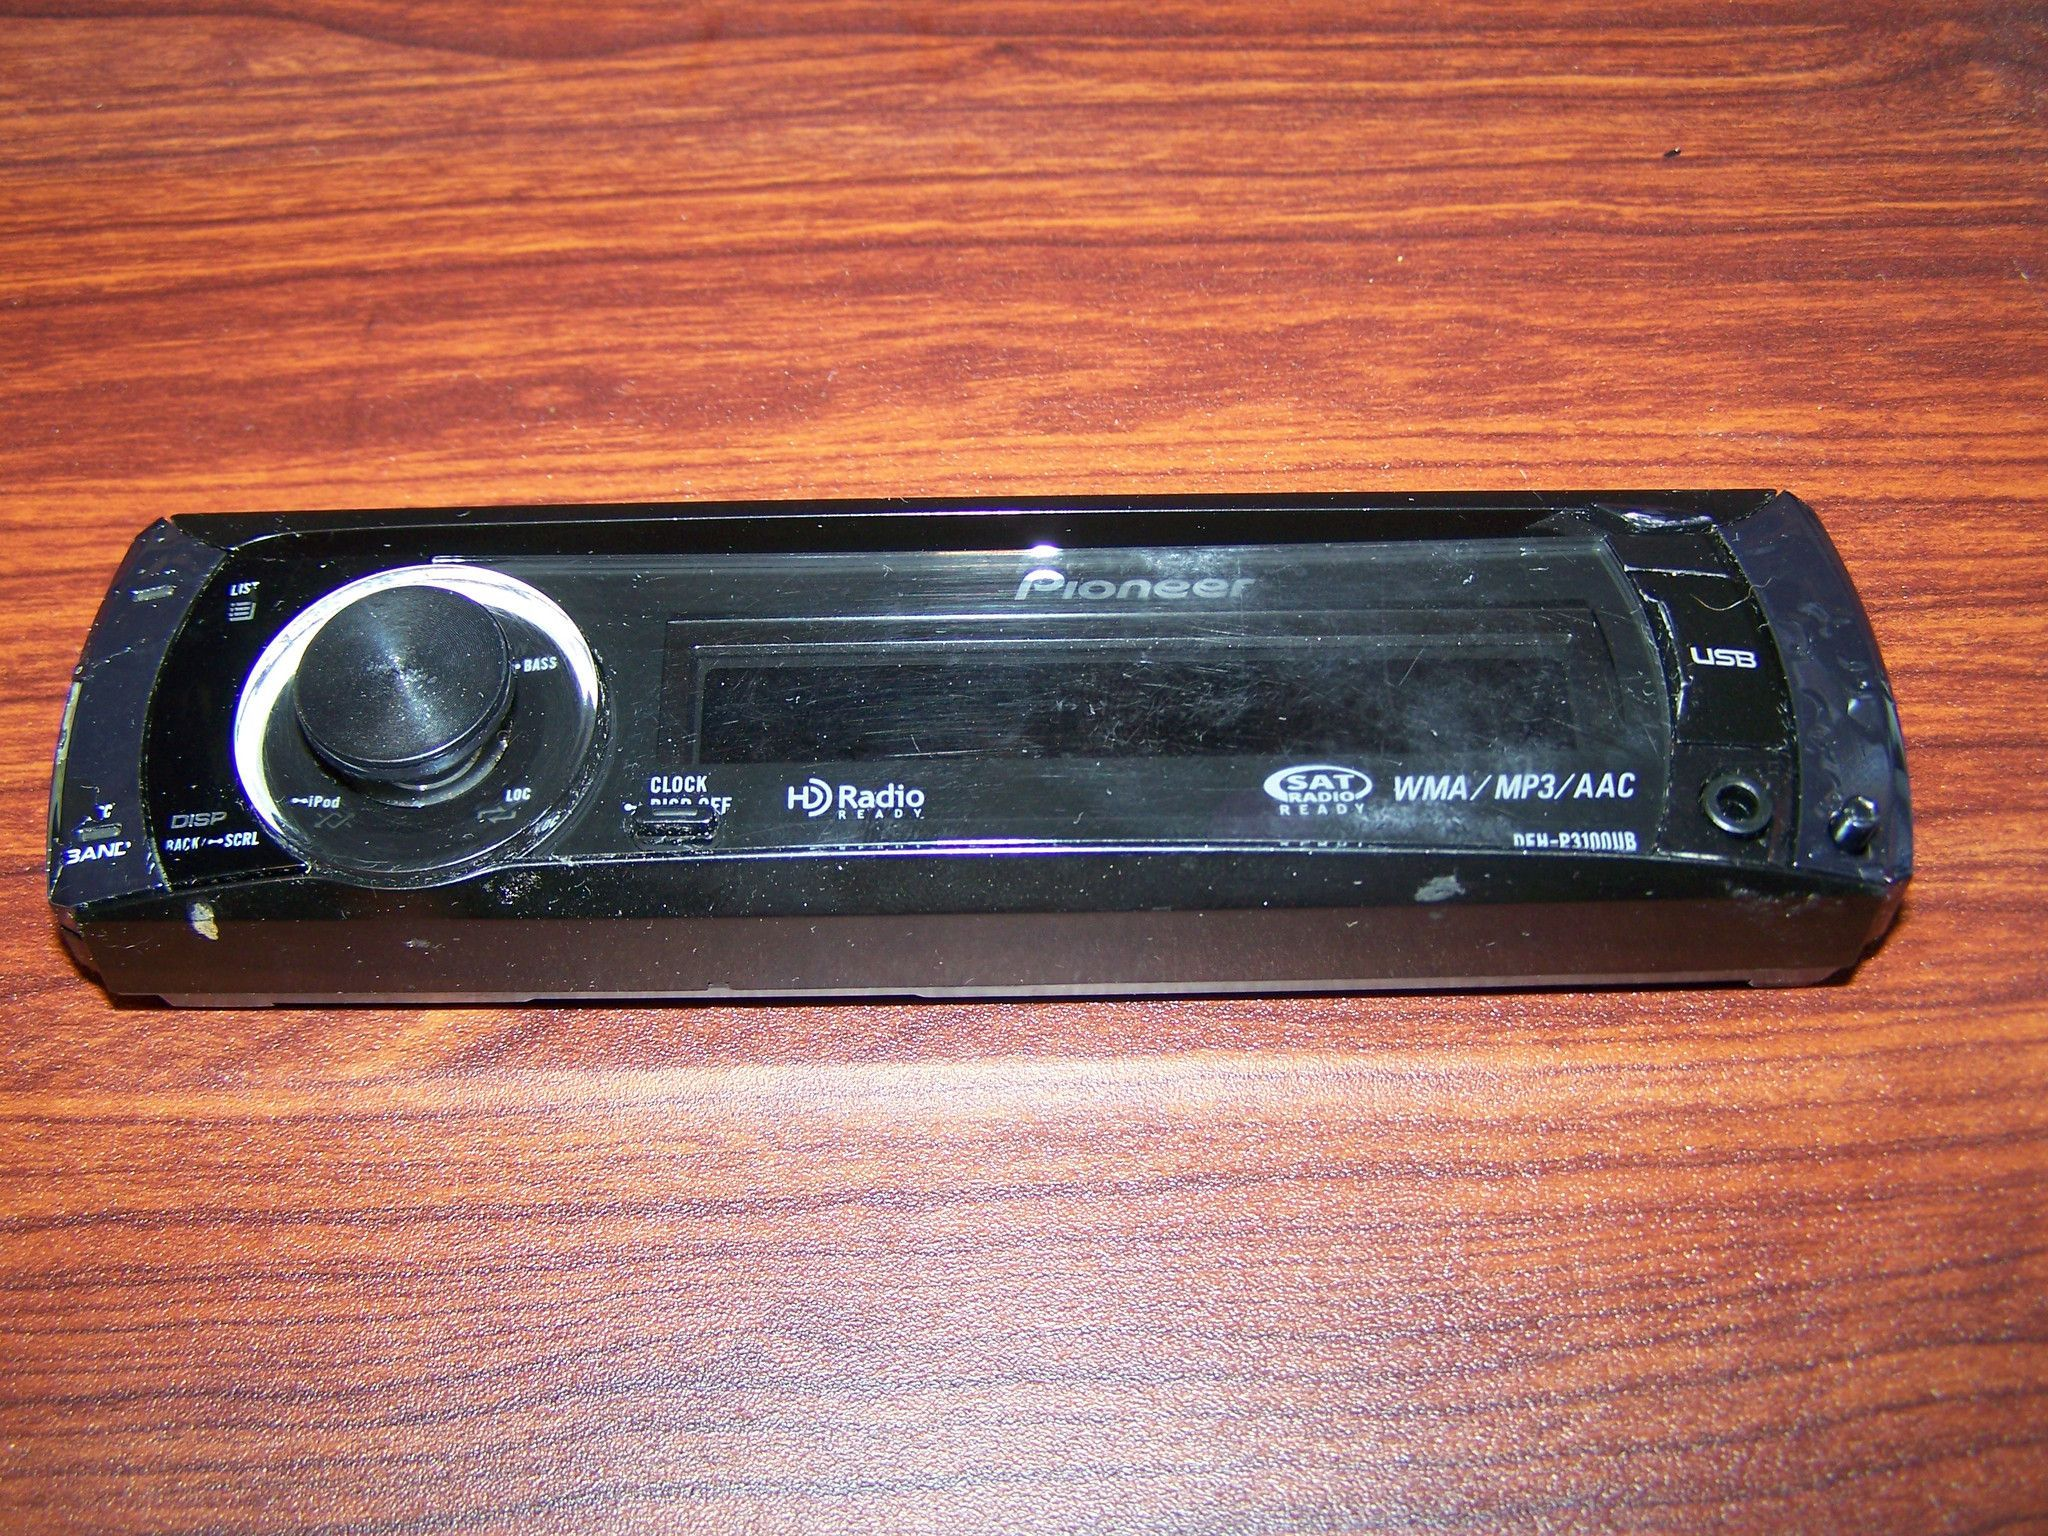 Pioneer Stereo Face Plate Replacement Model DEH-P3100UB faceplate DEHP3100UB DEH P3100UB